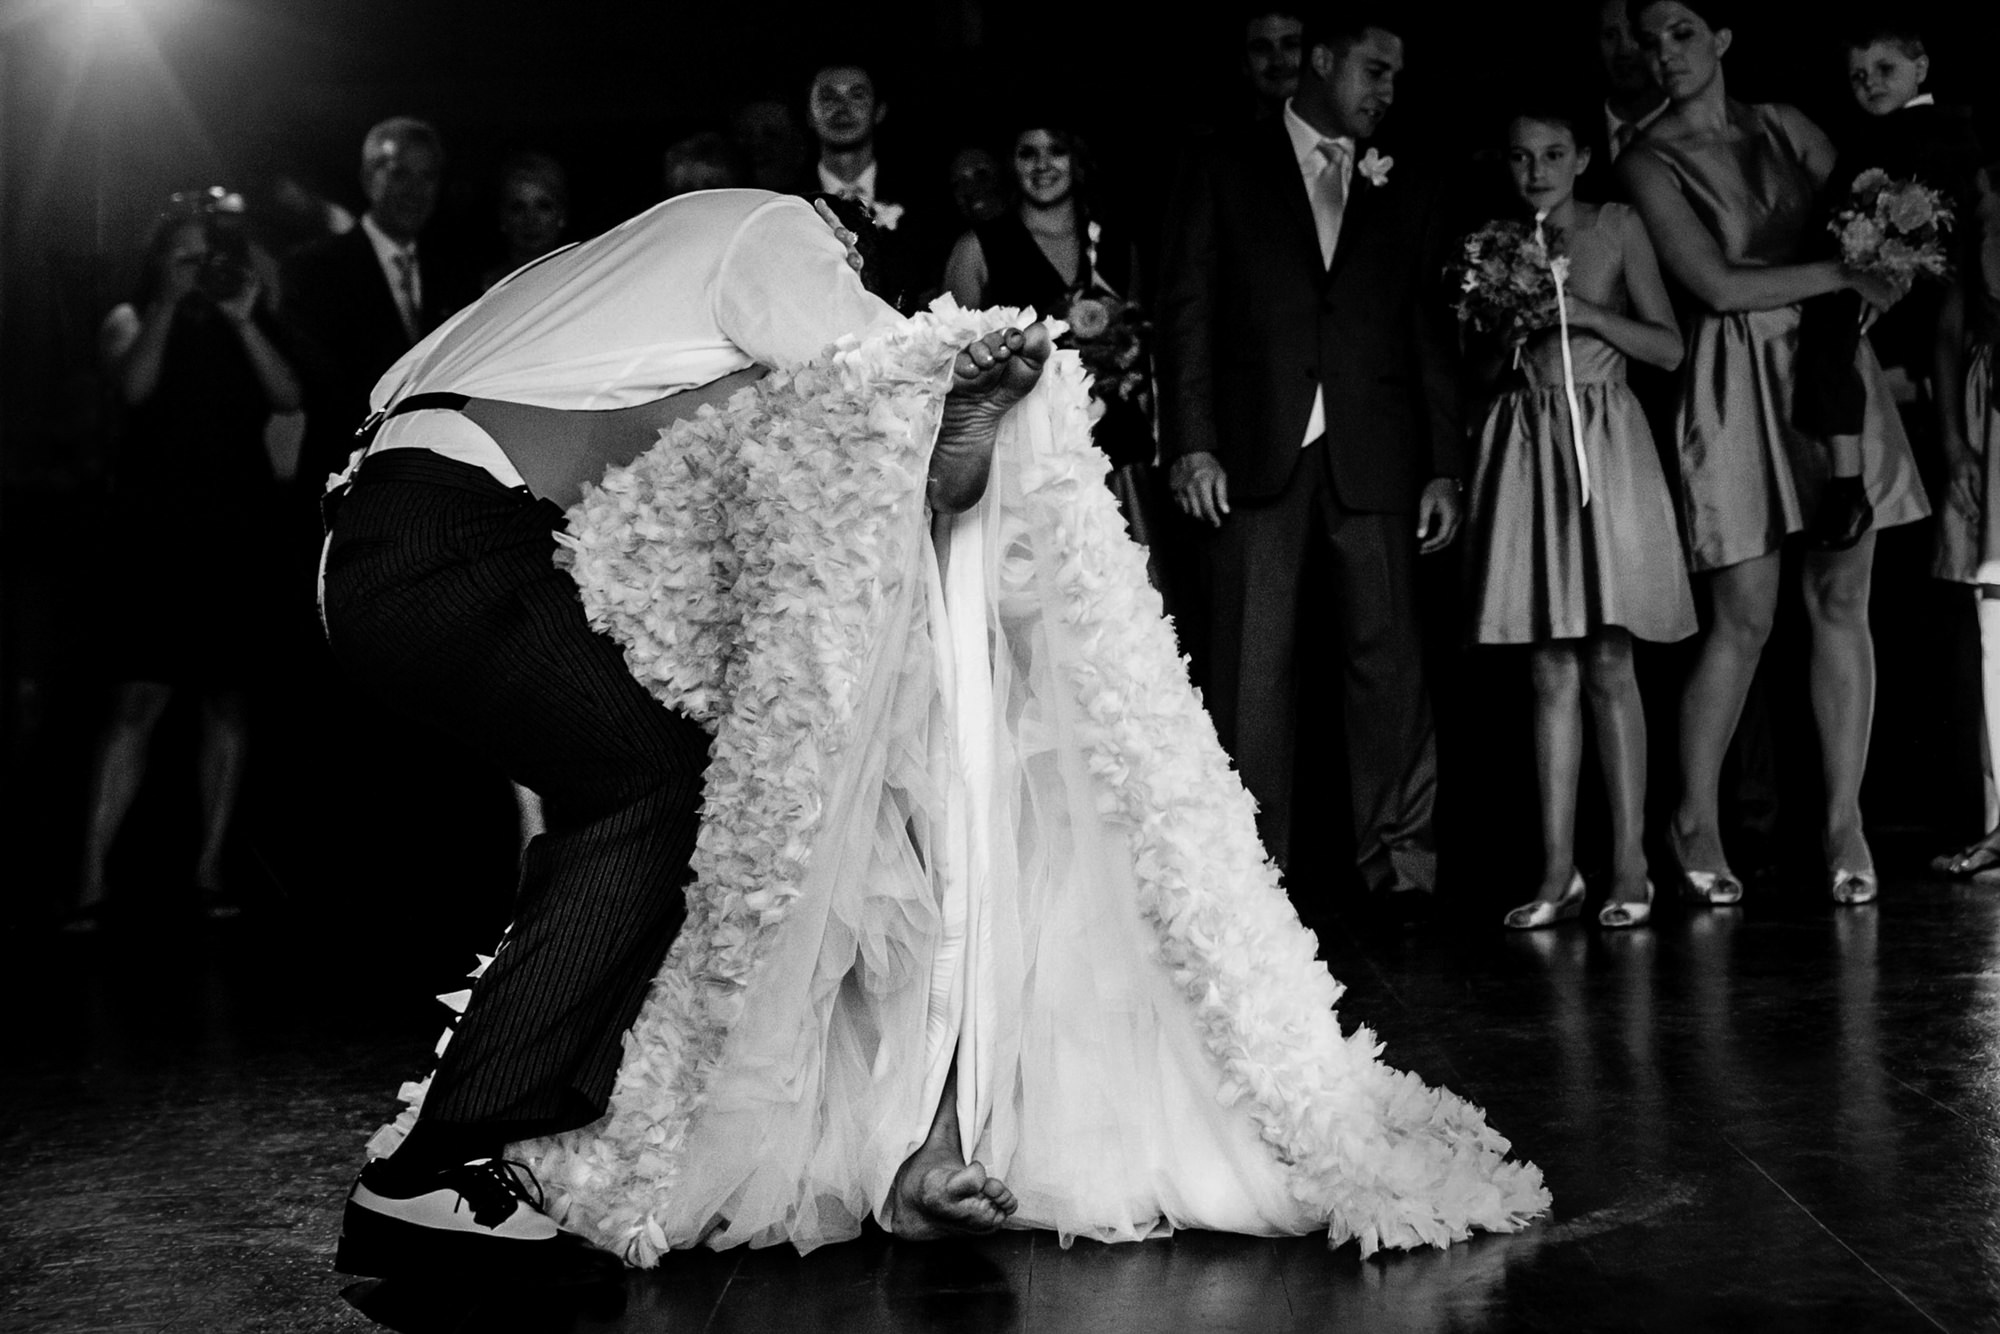 Groom dipping and kissing bride on dance floor - photo by JAG Photos